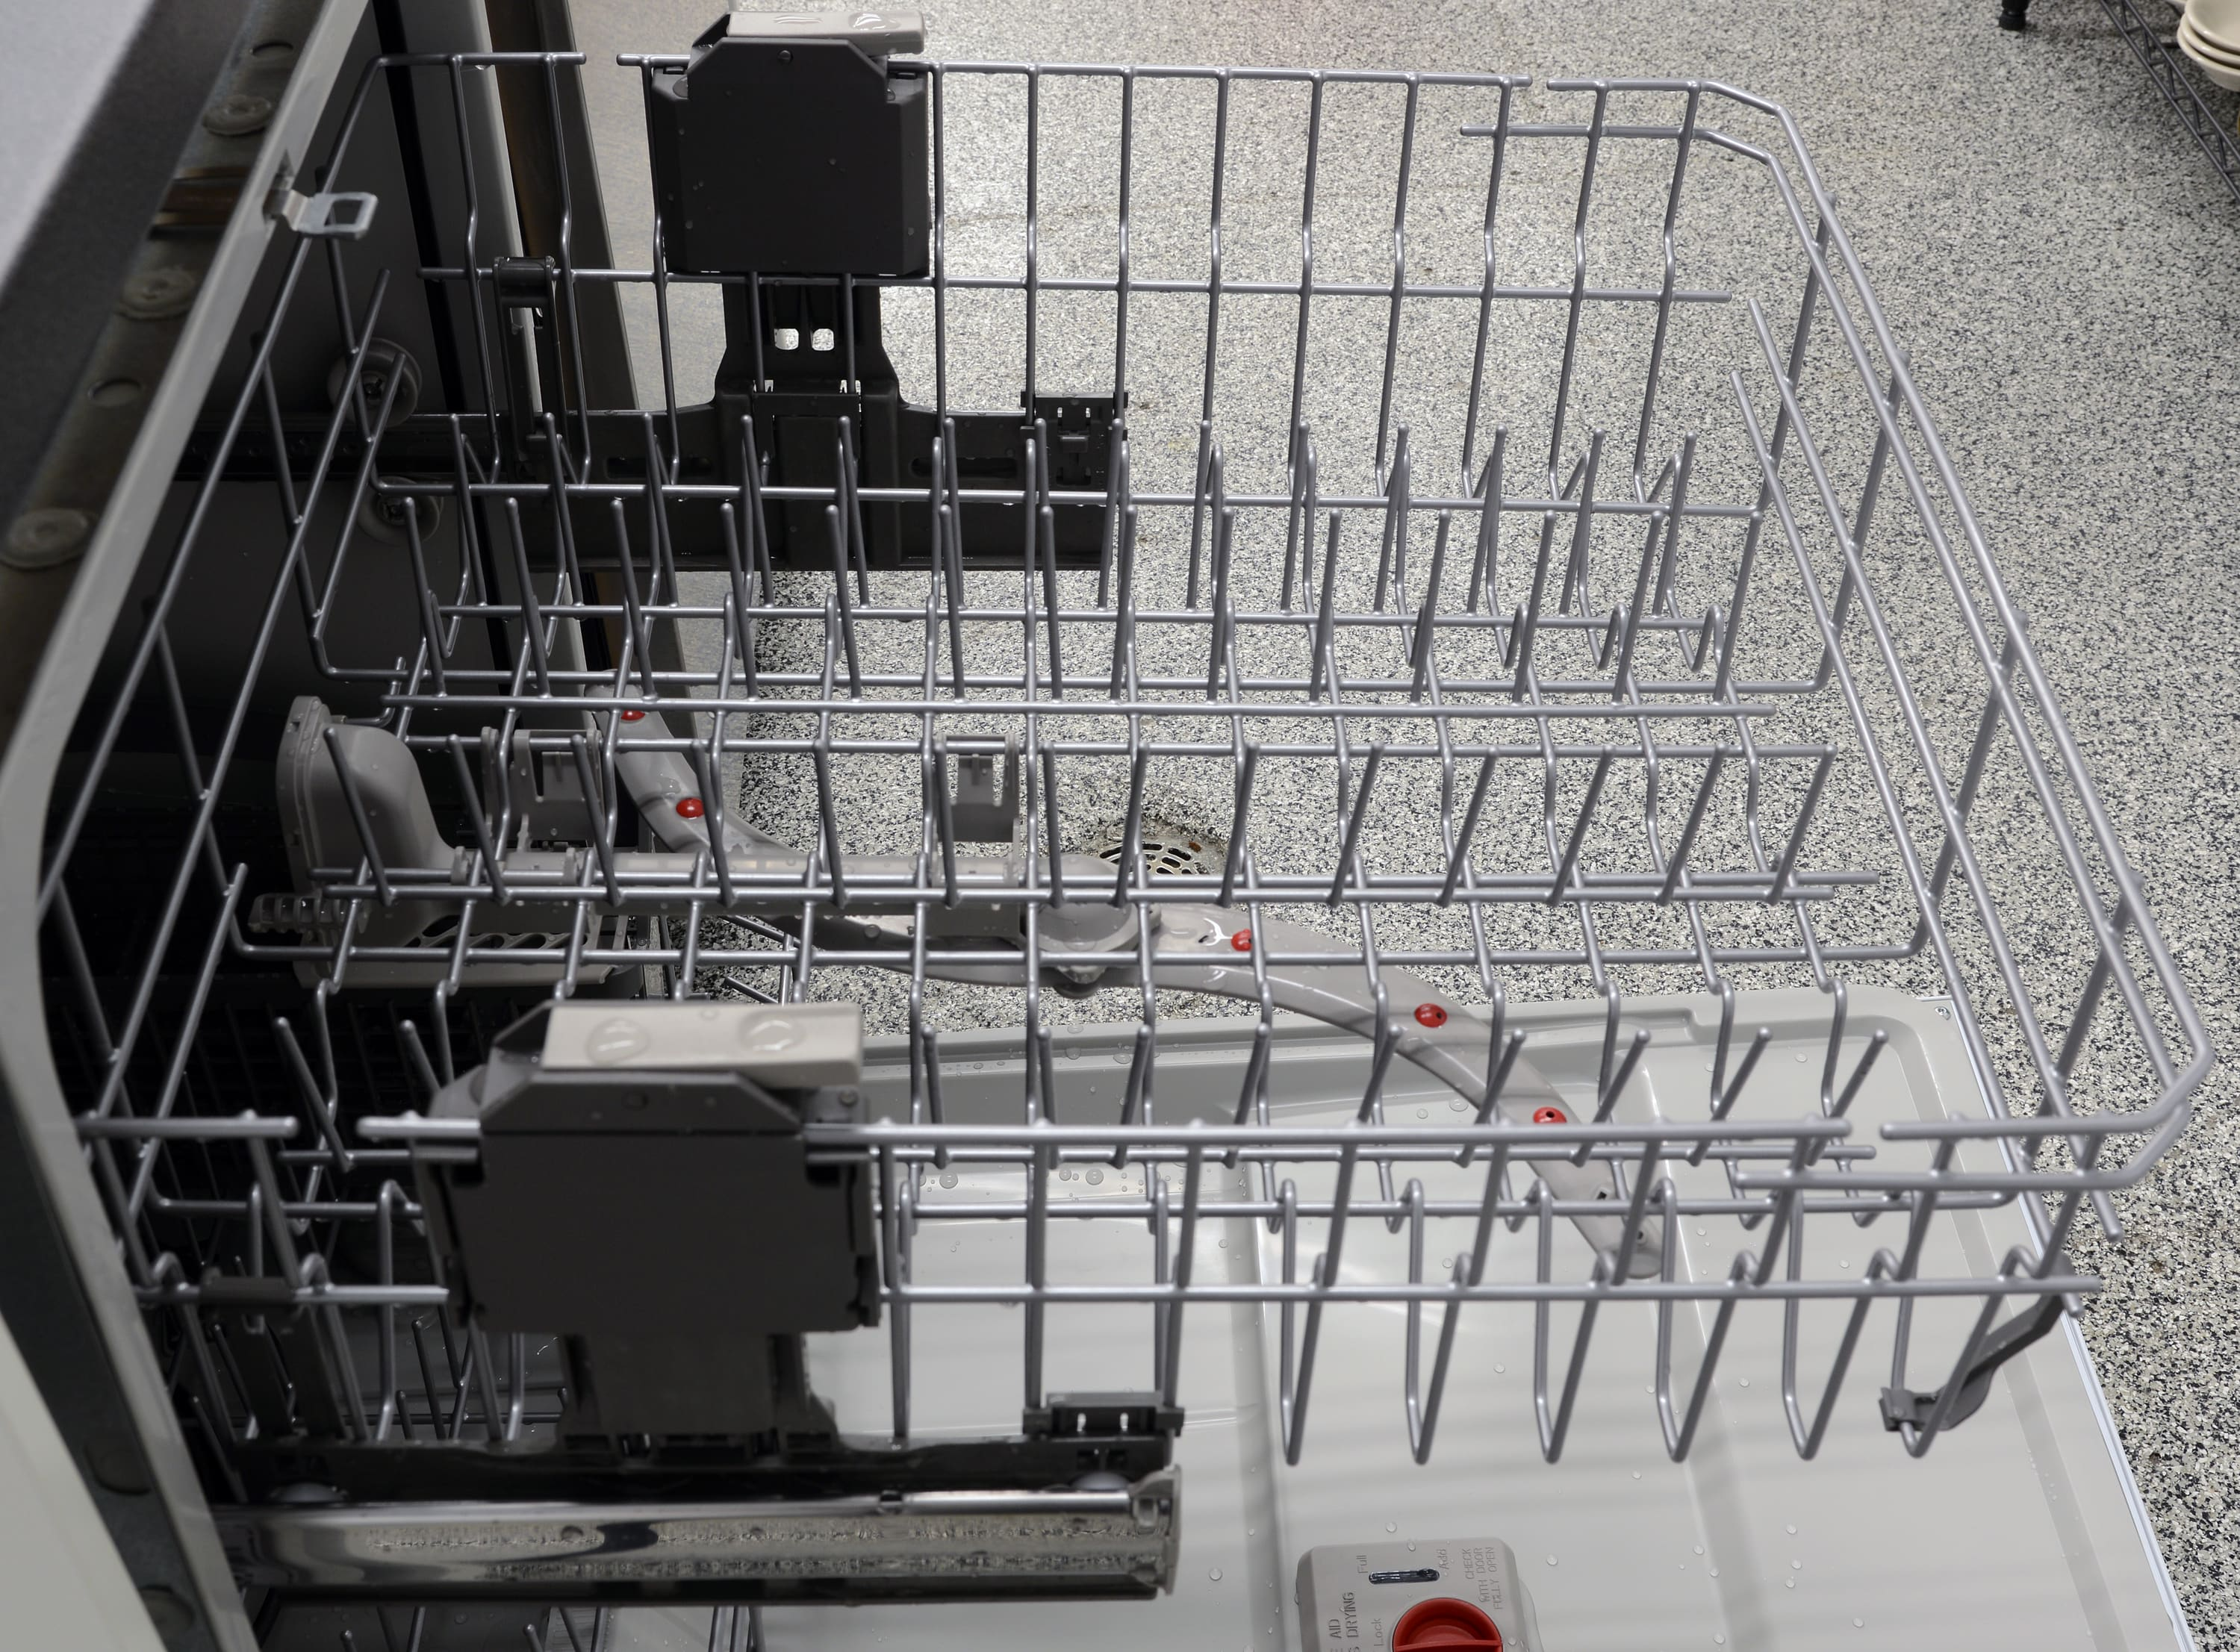 Kenmore 13202 upper rack